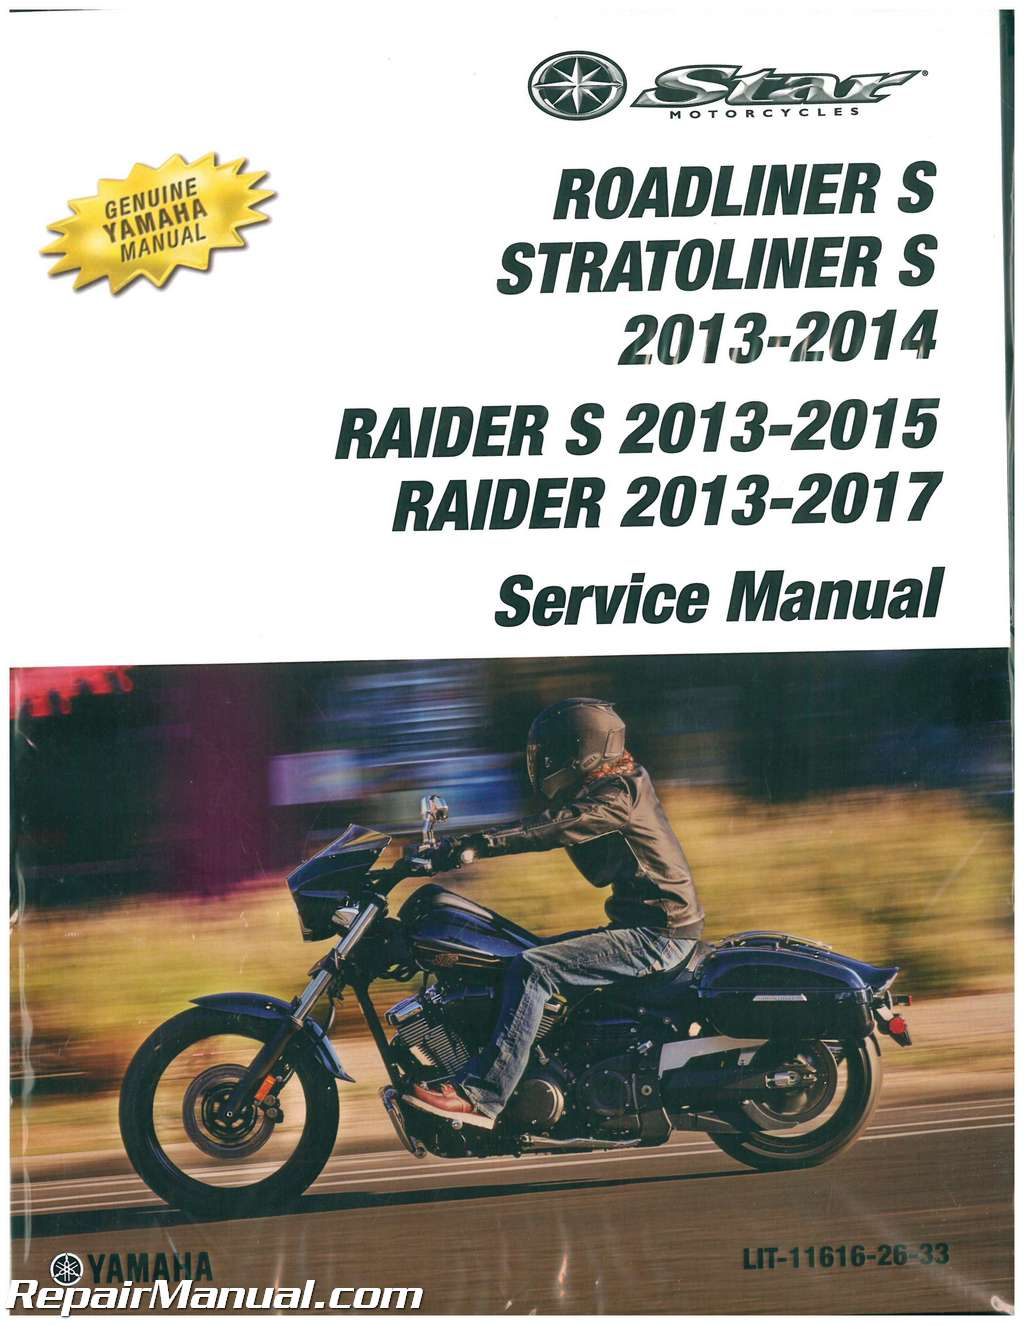 2013 2017 yamaha raider s stratoliner s roadliner s 1900 motorcycle rh repairmanual com yamaha raider maintenance manual yamaha raider maintenance manual